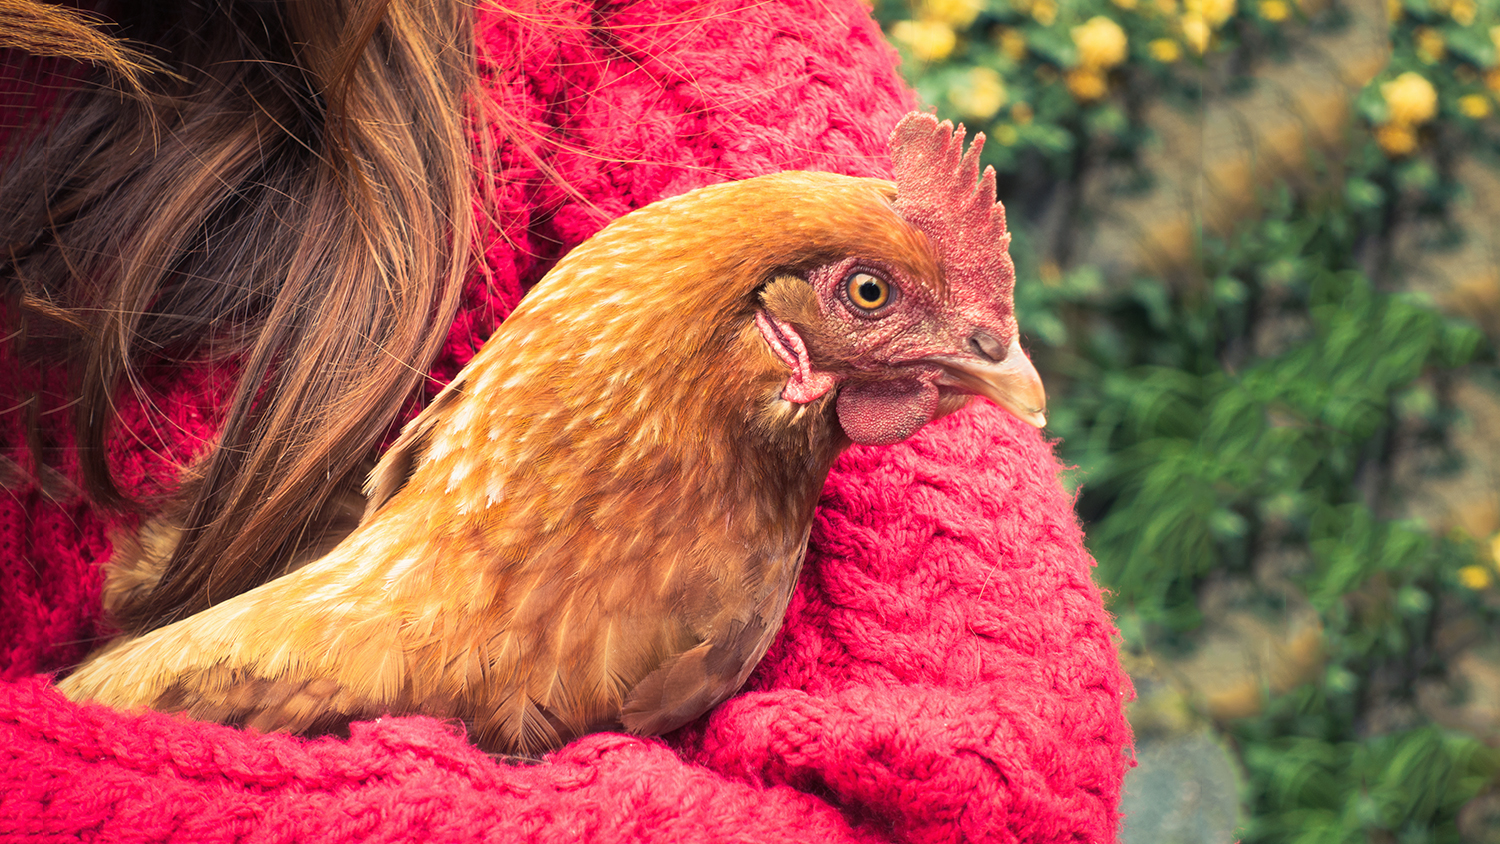 snuggling chickens